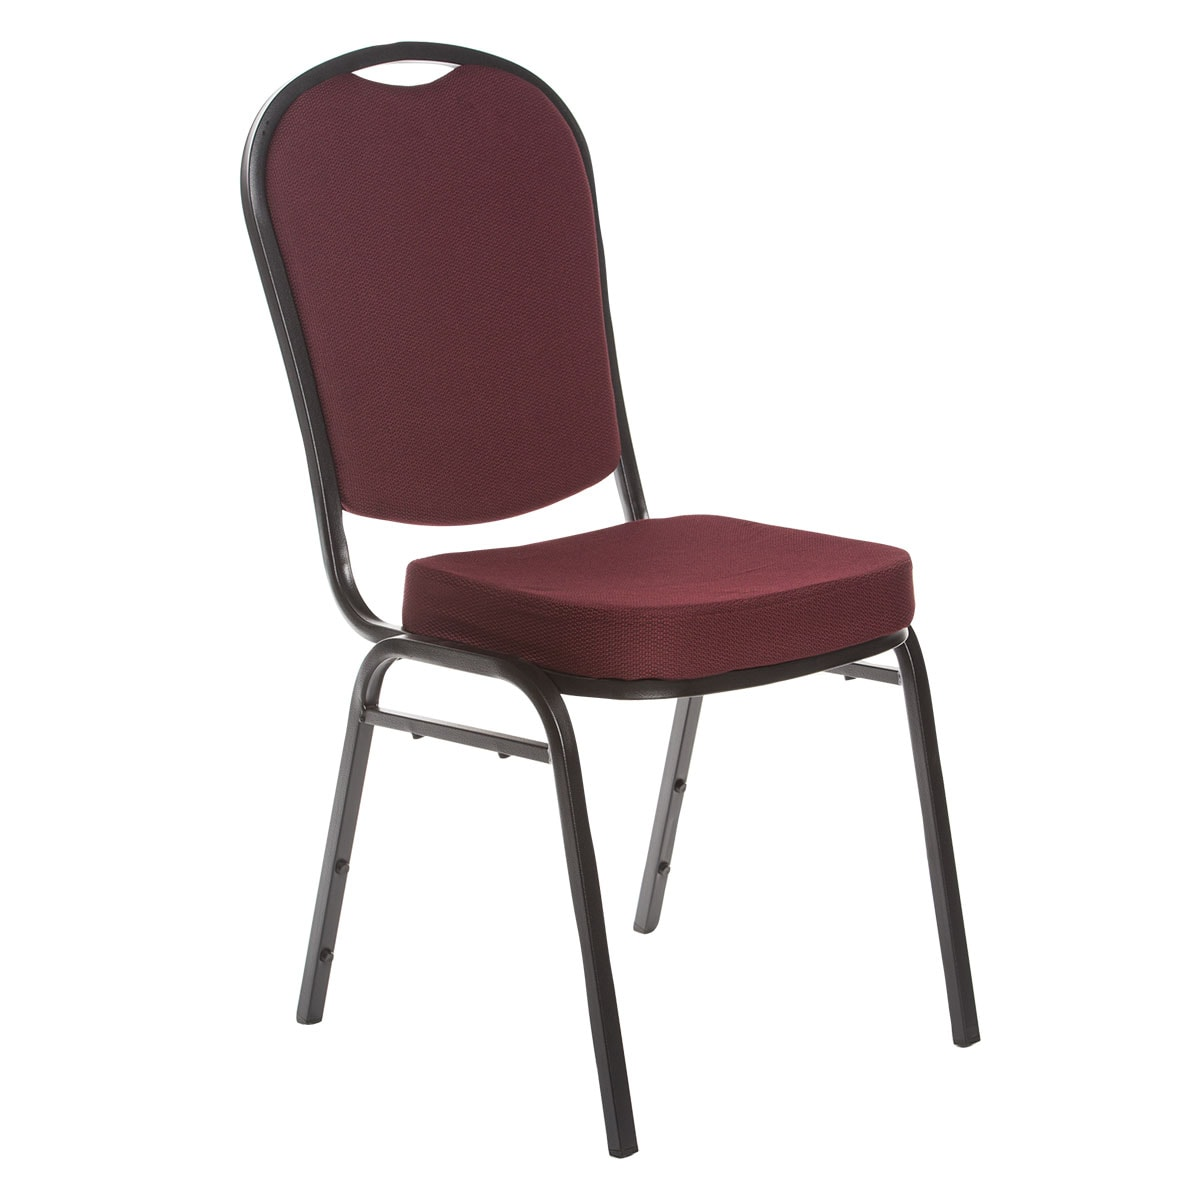 Burgundy stacking chair - Tiger model